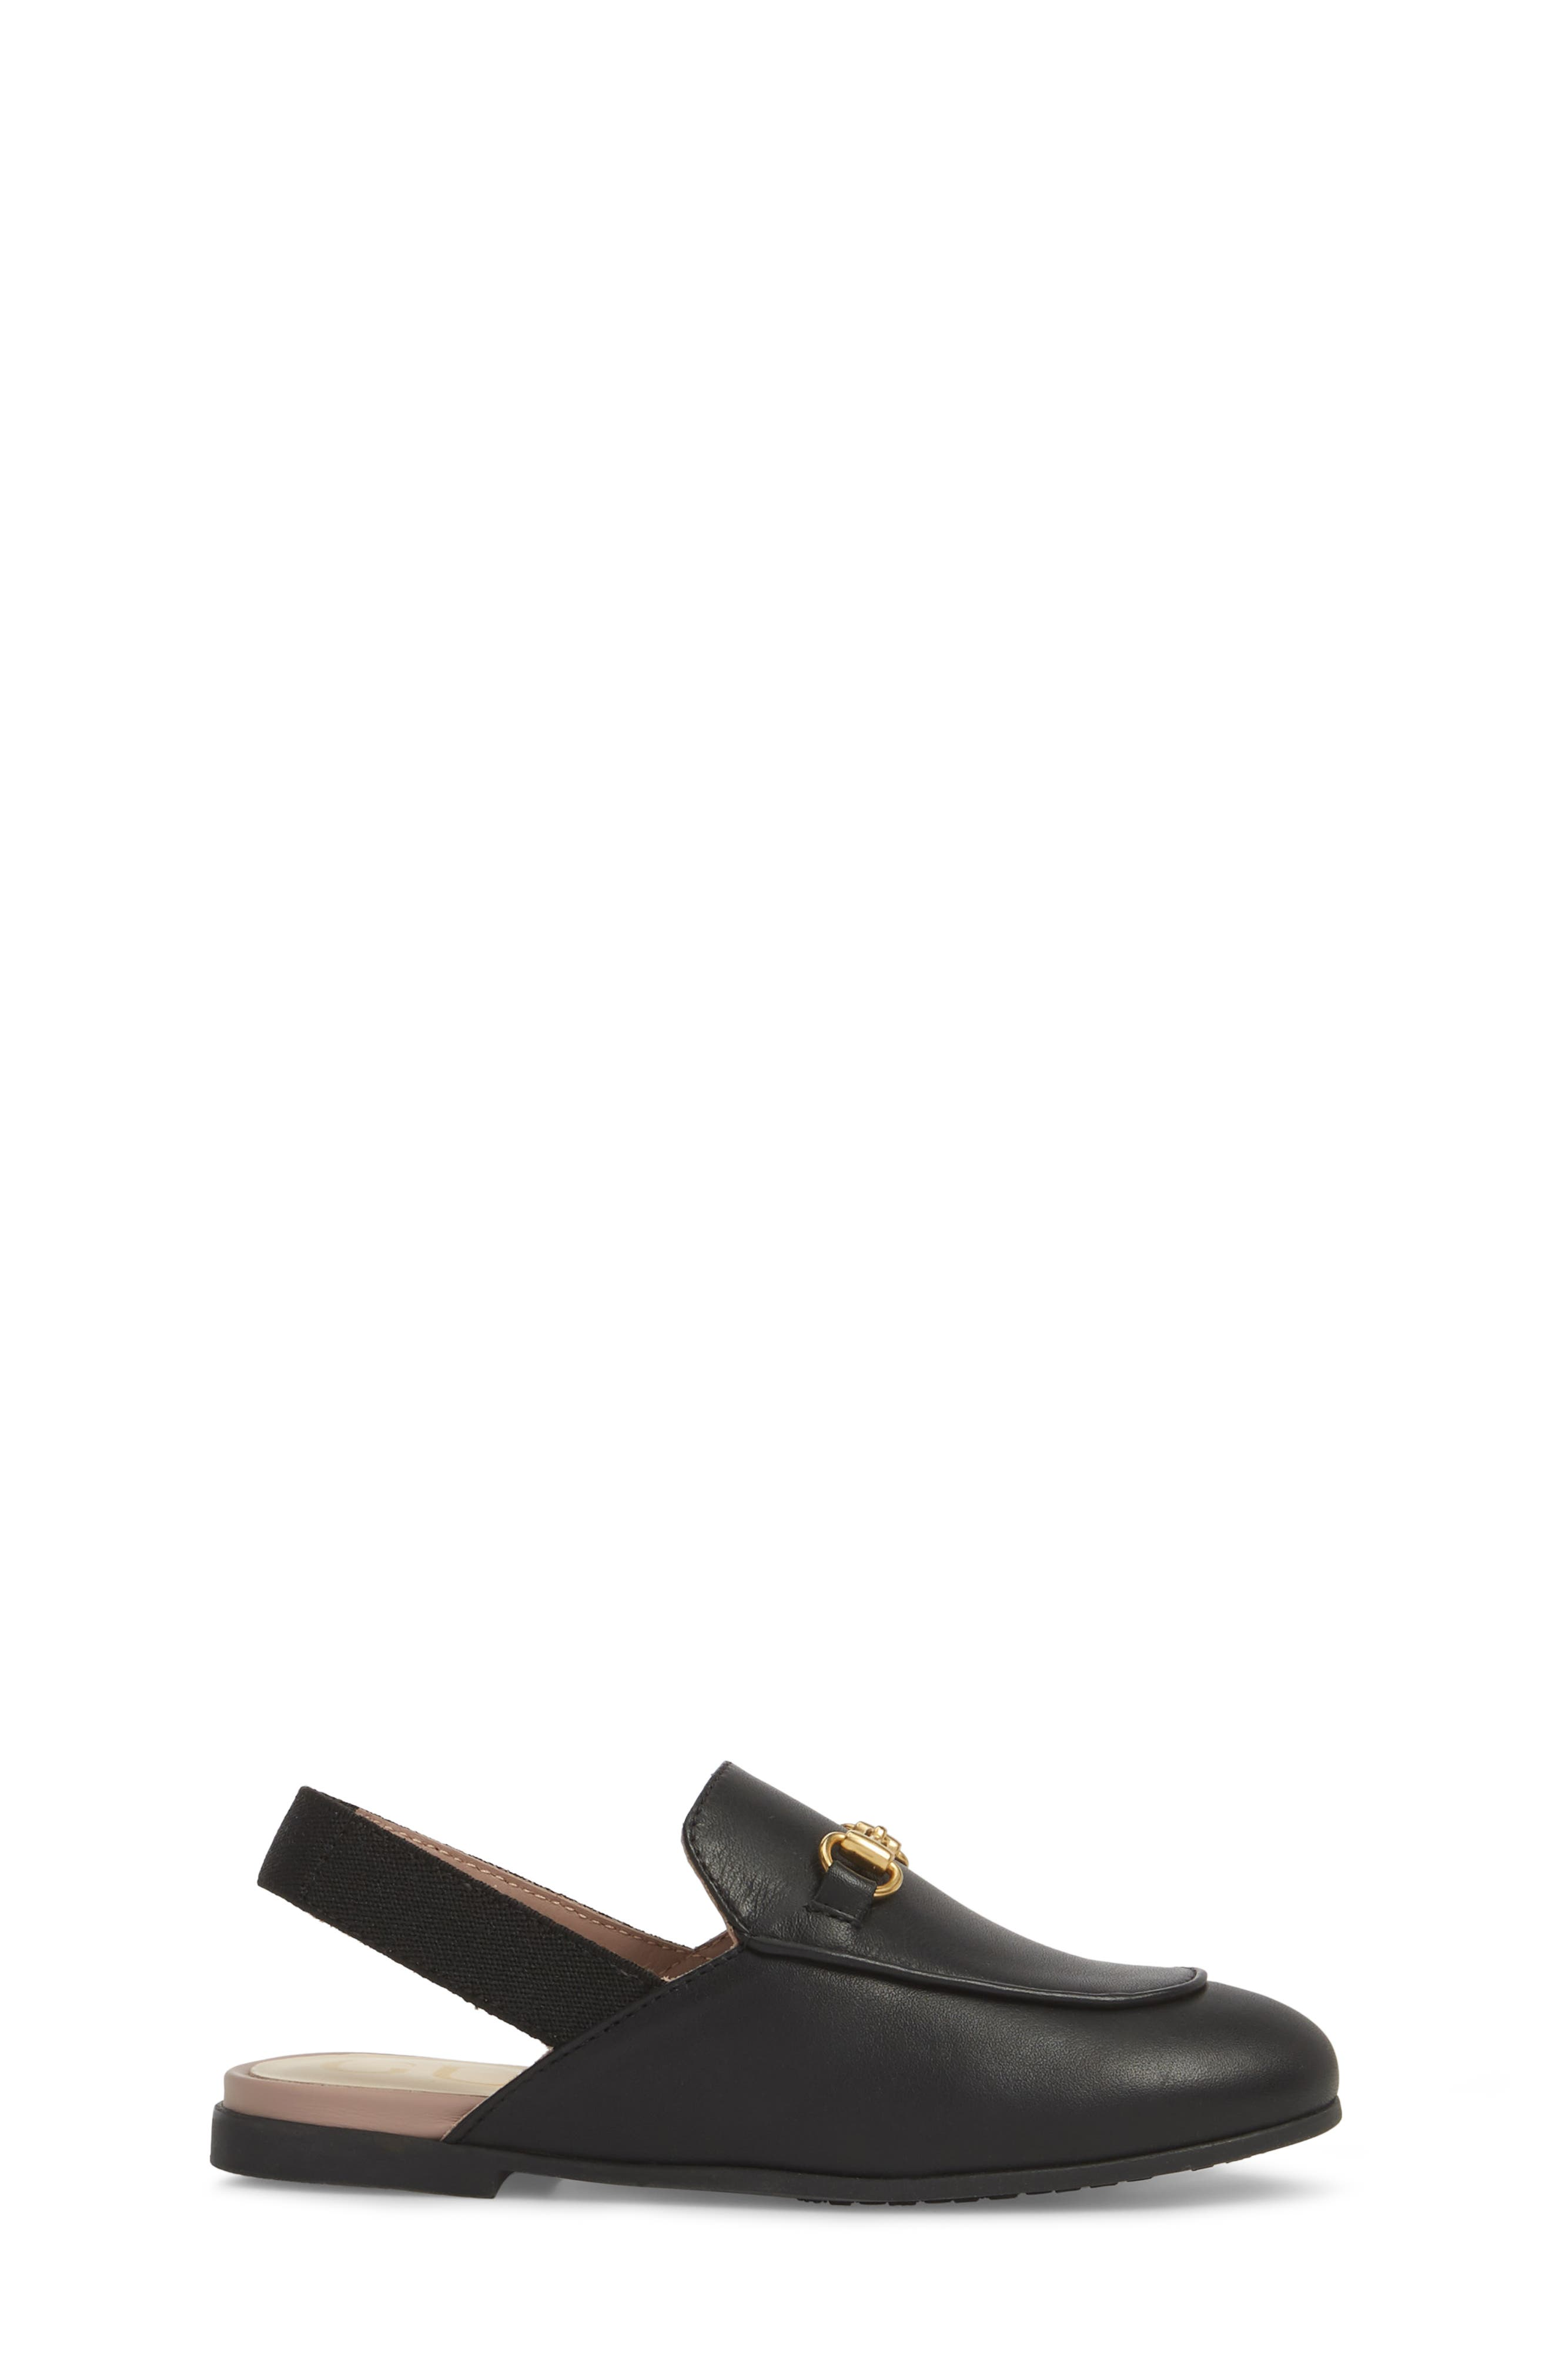 GUCCI, Princetown Loafer Mule, Alternate thumbnail 3, color, BLACK/ BLACK